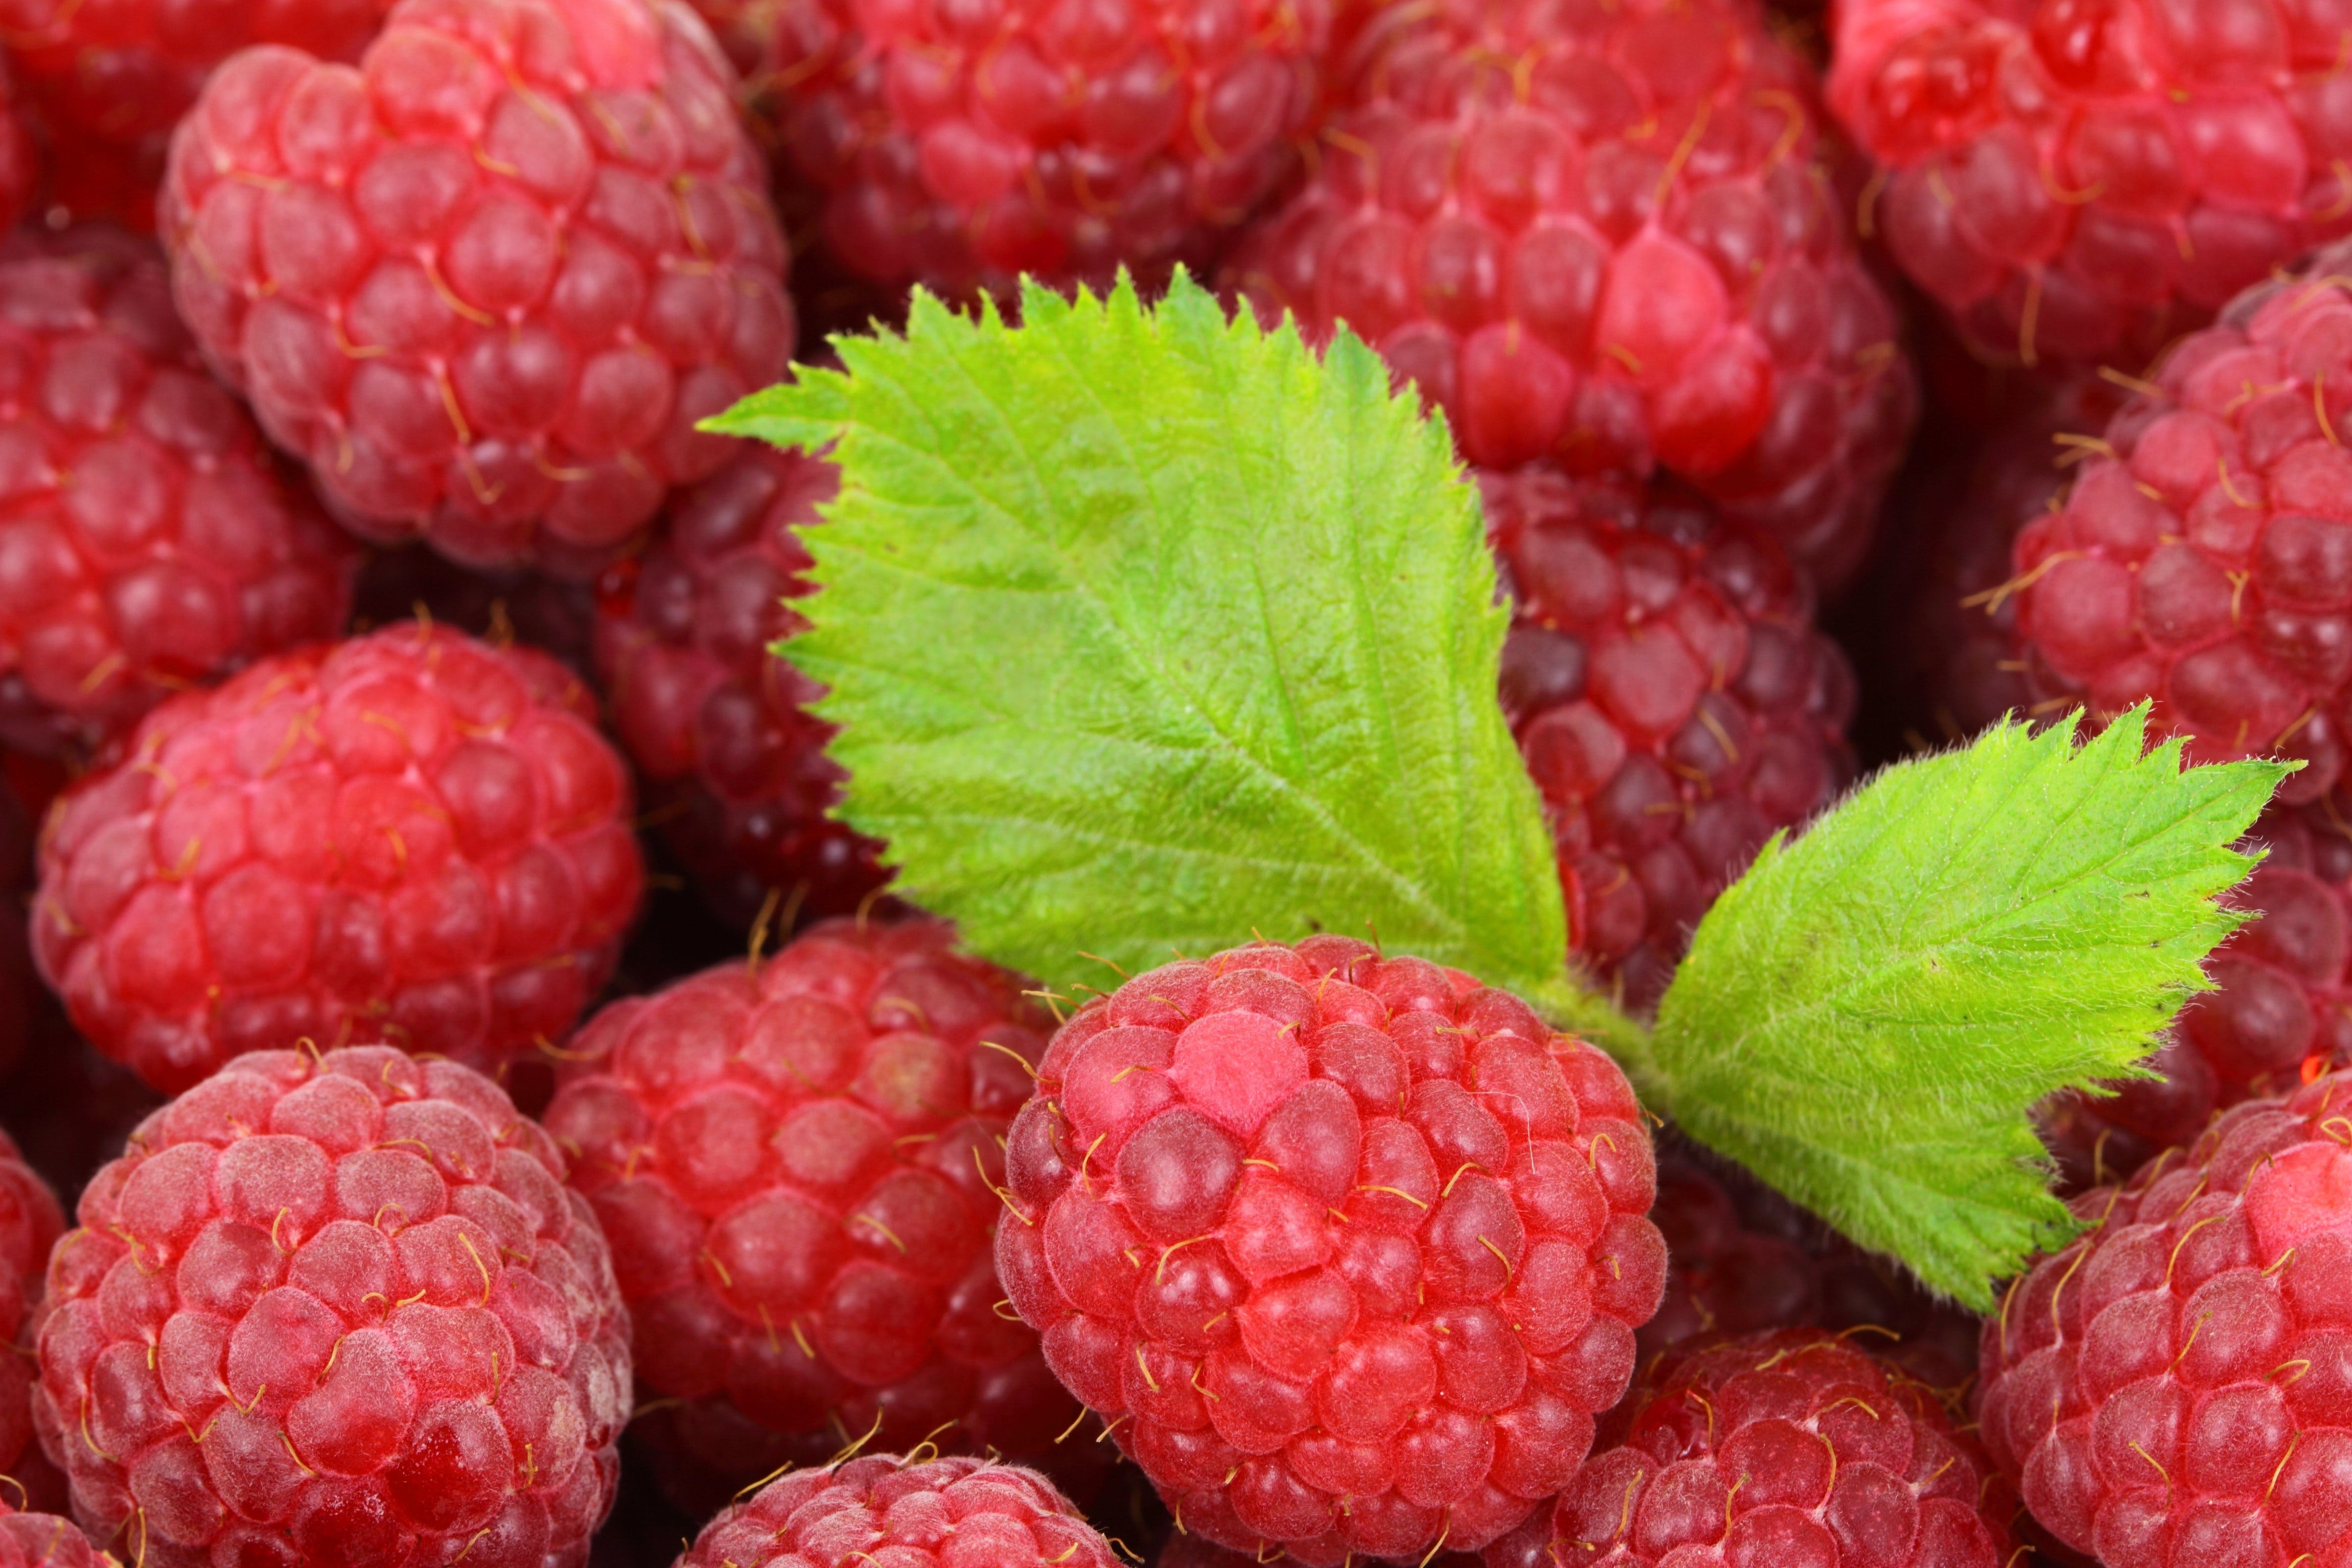 Red Raspberries With Green Leaves